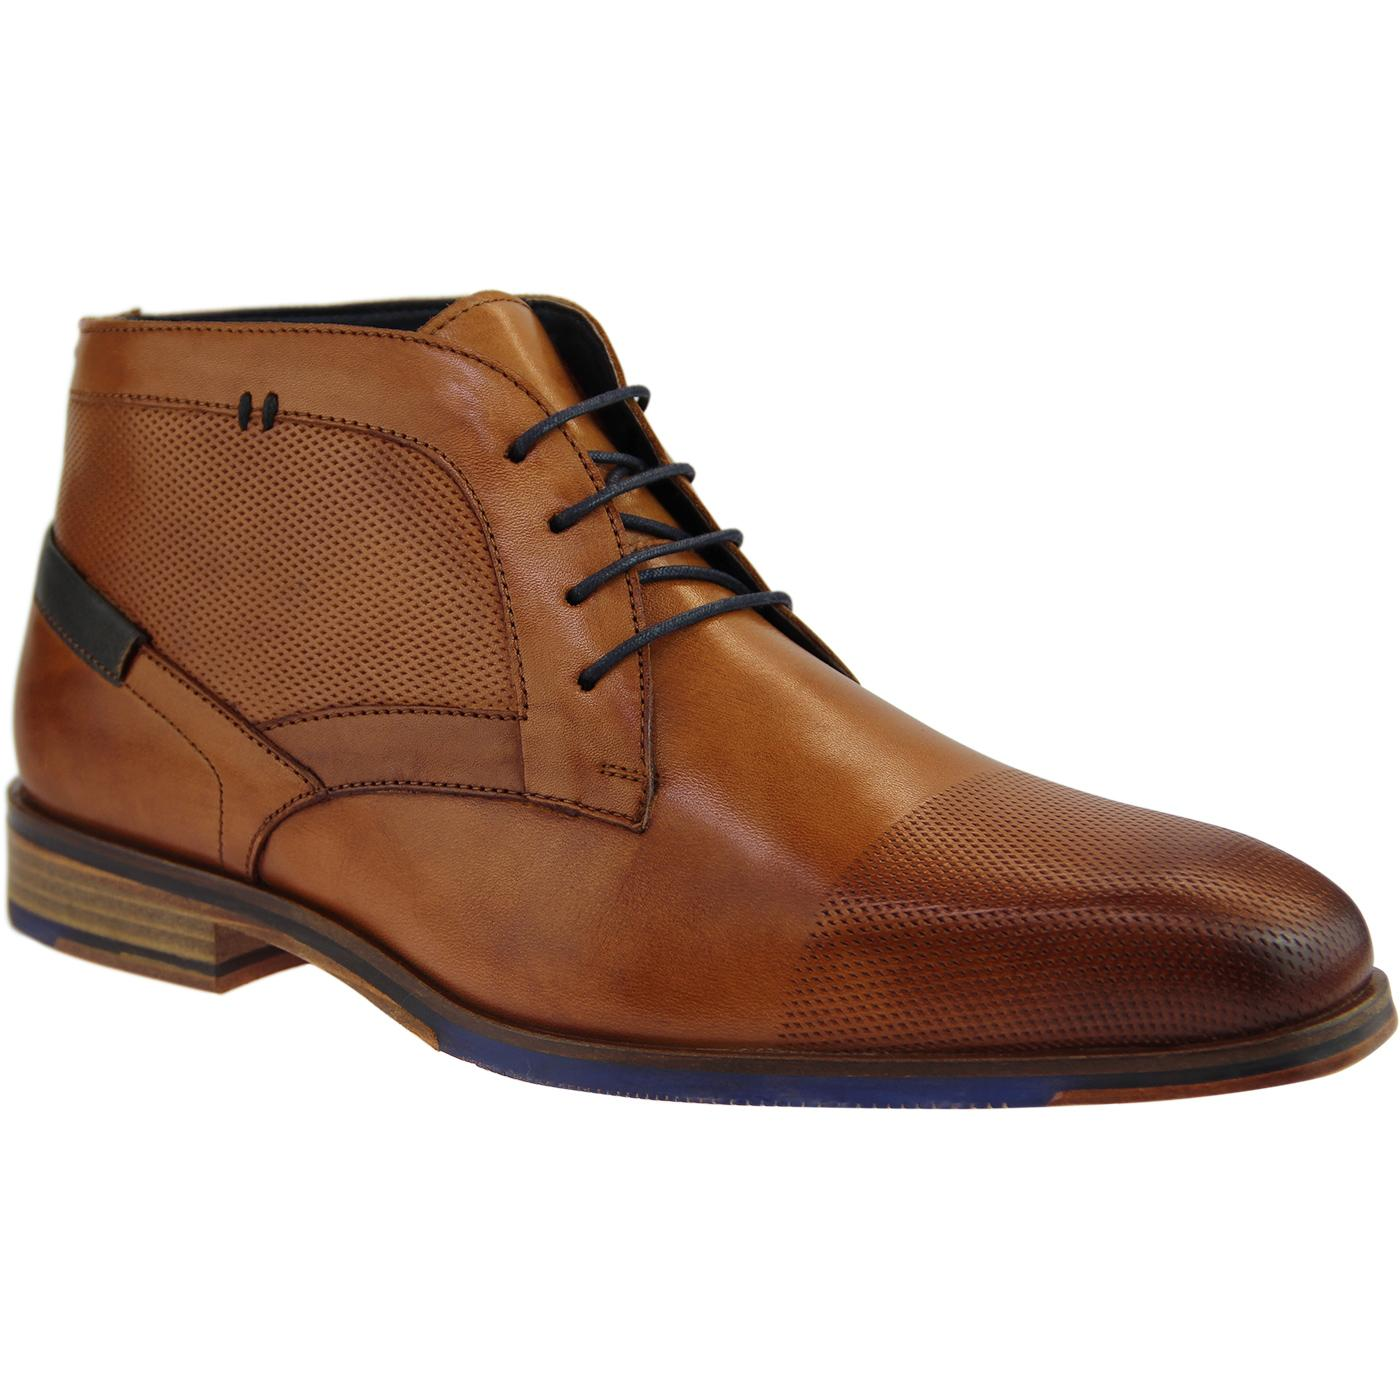 Dalton PAOLO VANDINI Mod Textured Worker Boots TAN